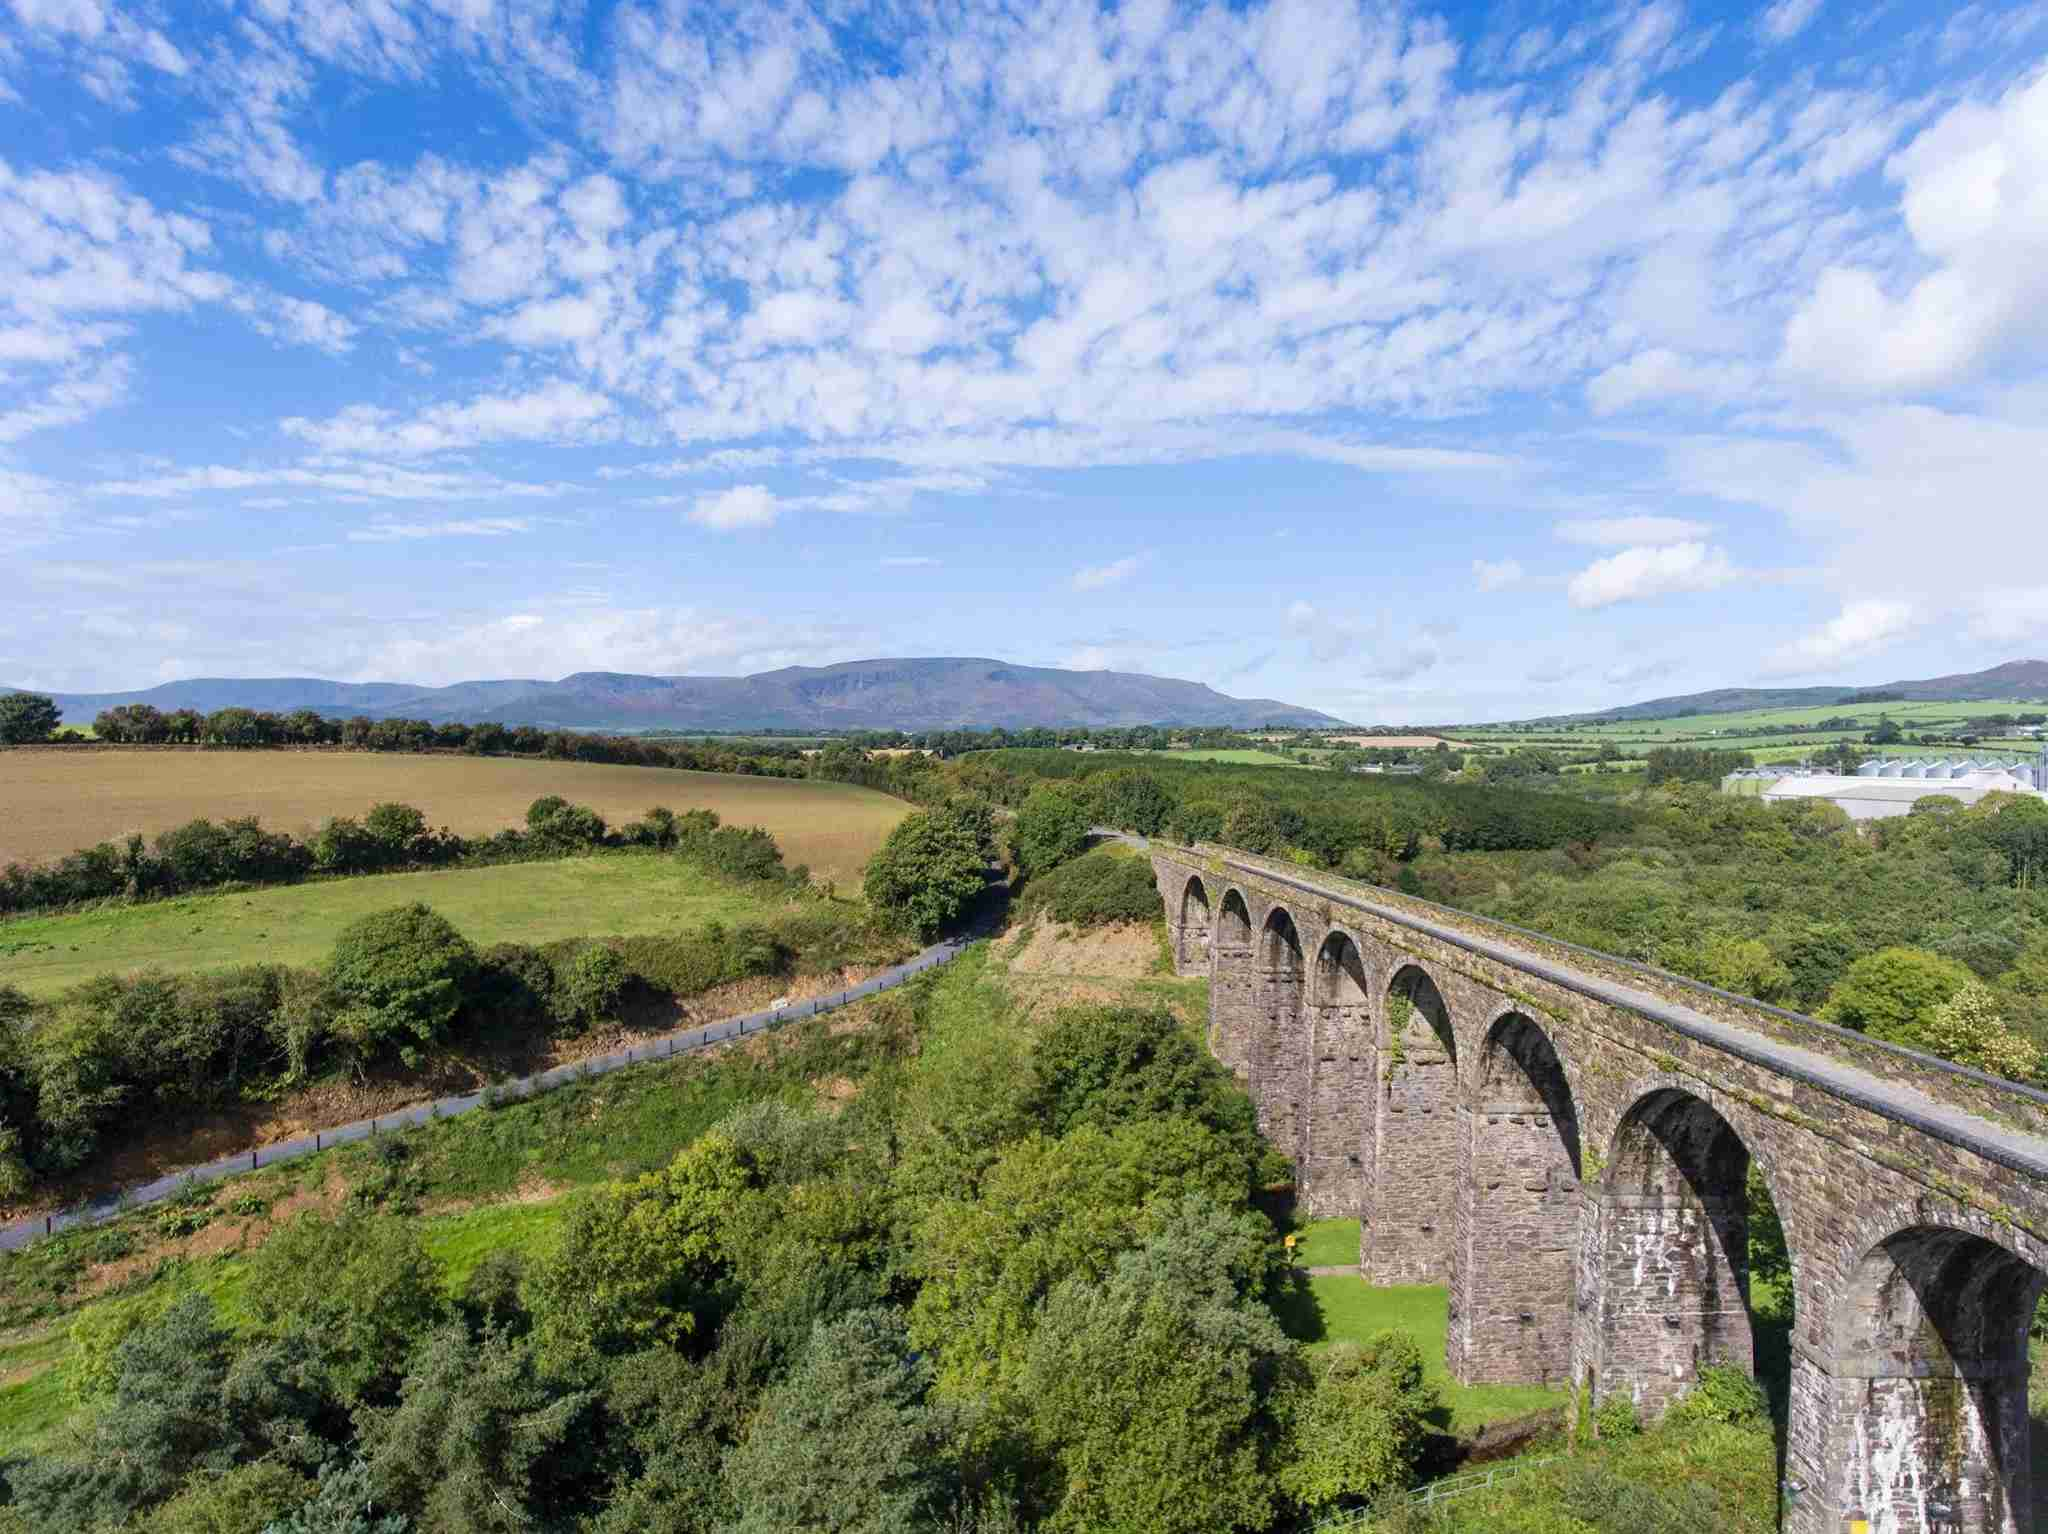 Image courtesy of the Waterford Greenway